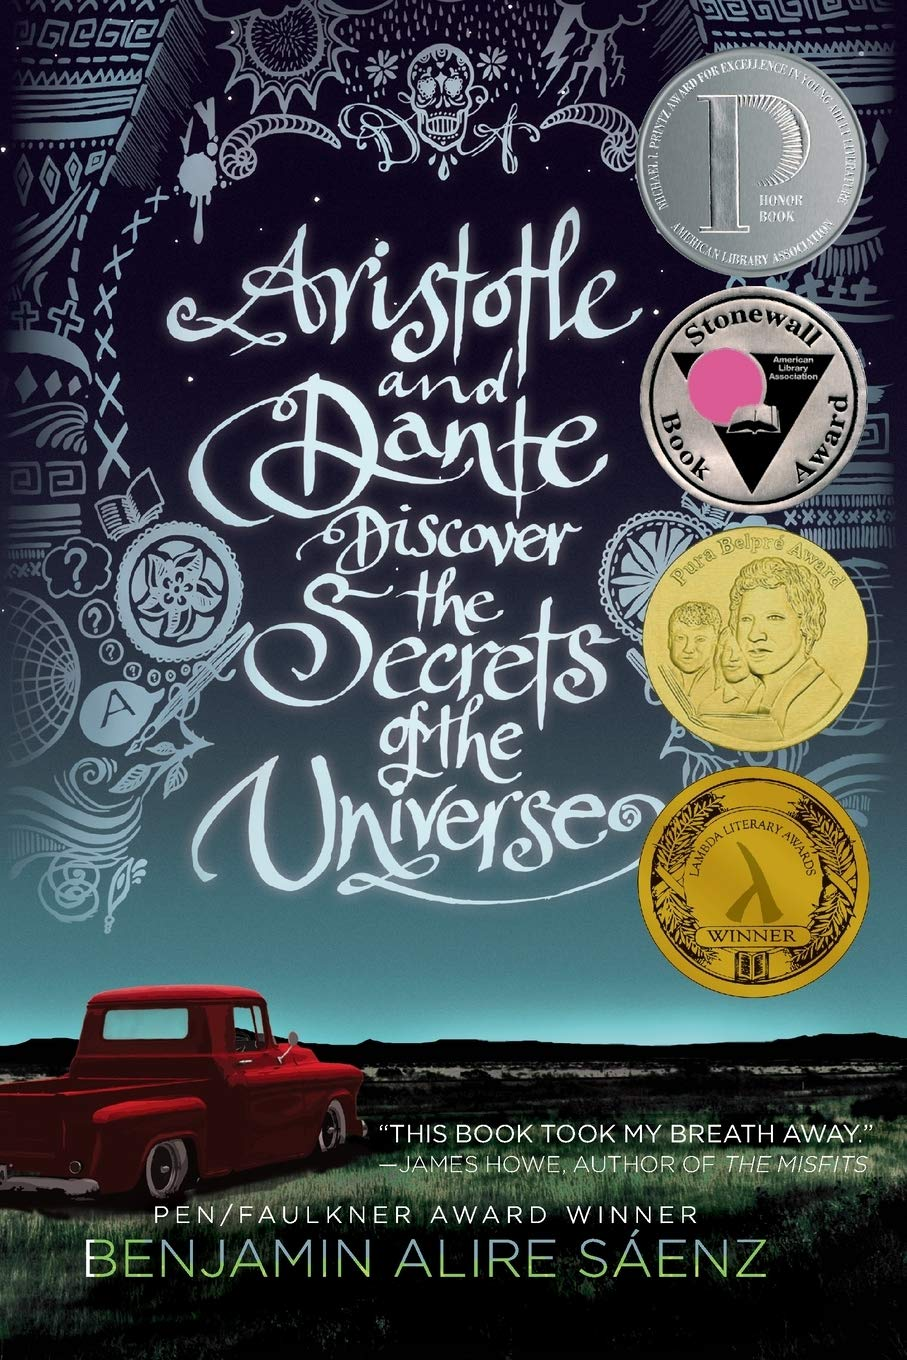 Amazon.com: Aristotle and Dante Discover the Secrets of the Universe  (8601404293382): Sáenz, Benjamin Alire: Books